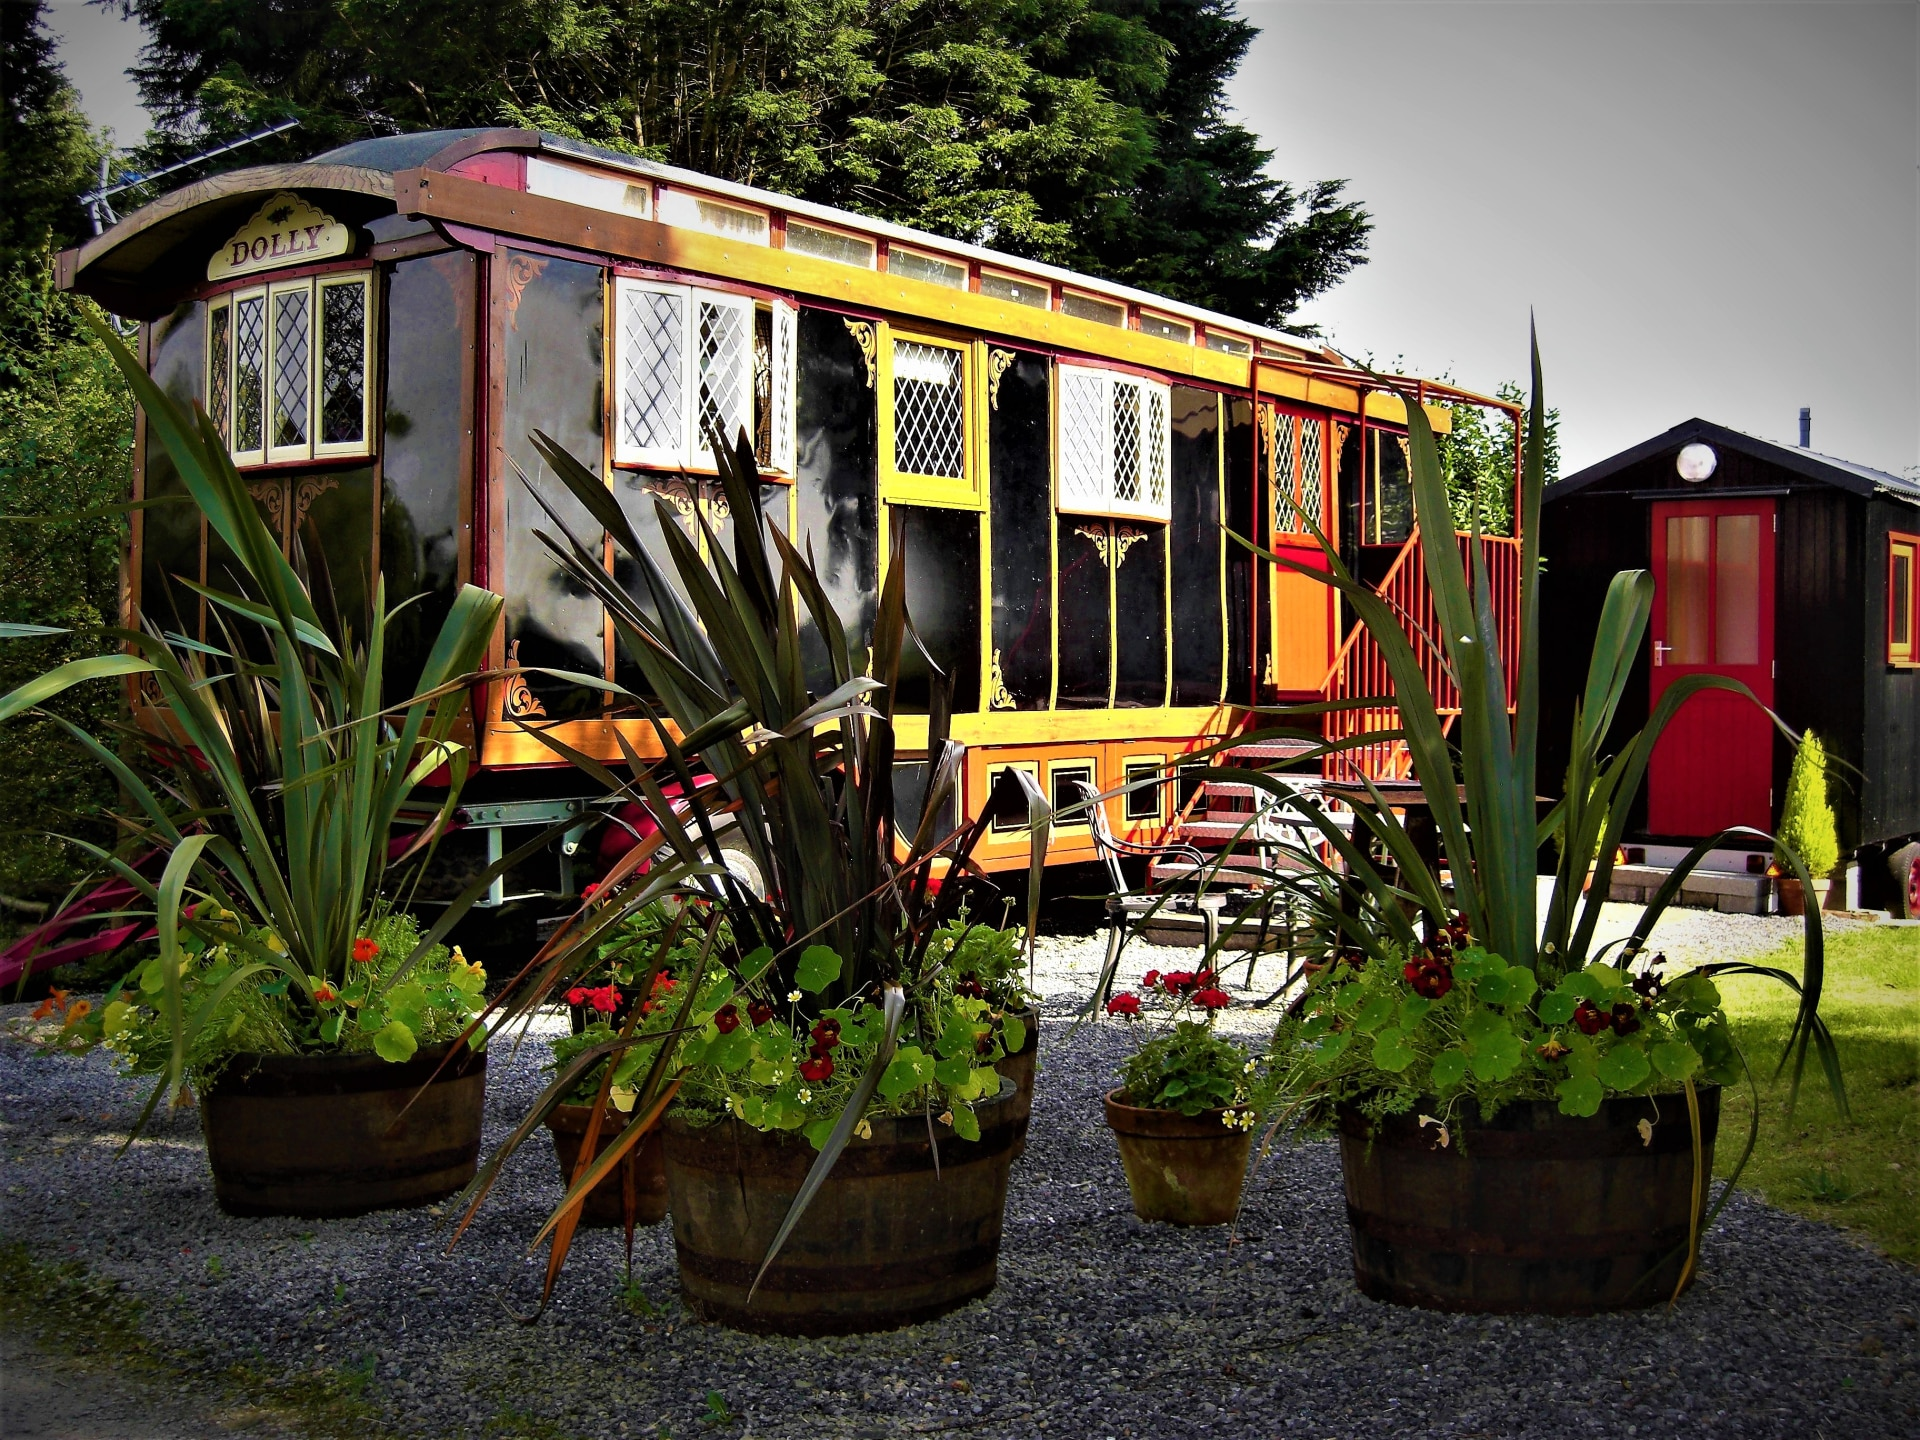 Dolly Glamping Shepherds Huts And Wagons in Ceredigion